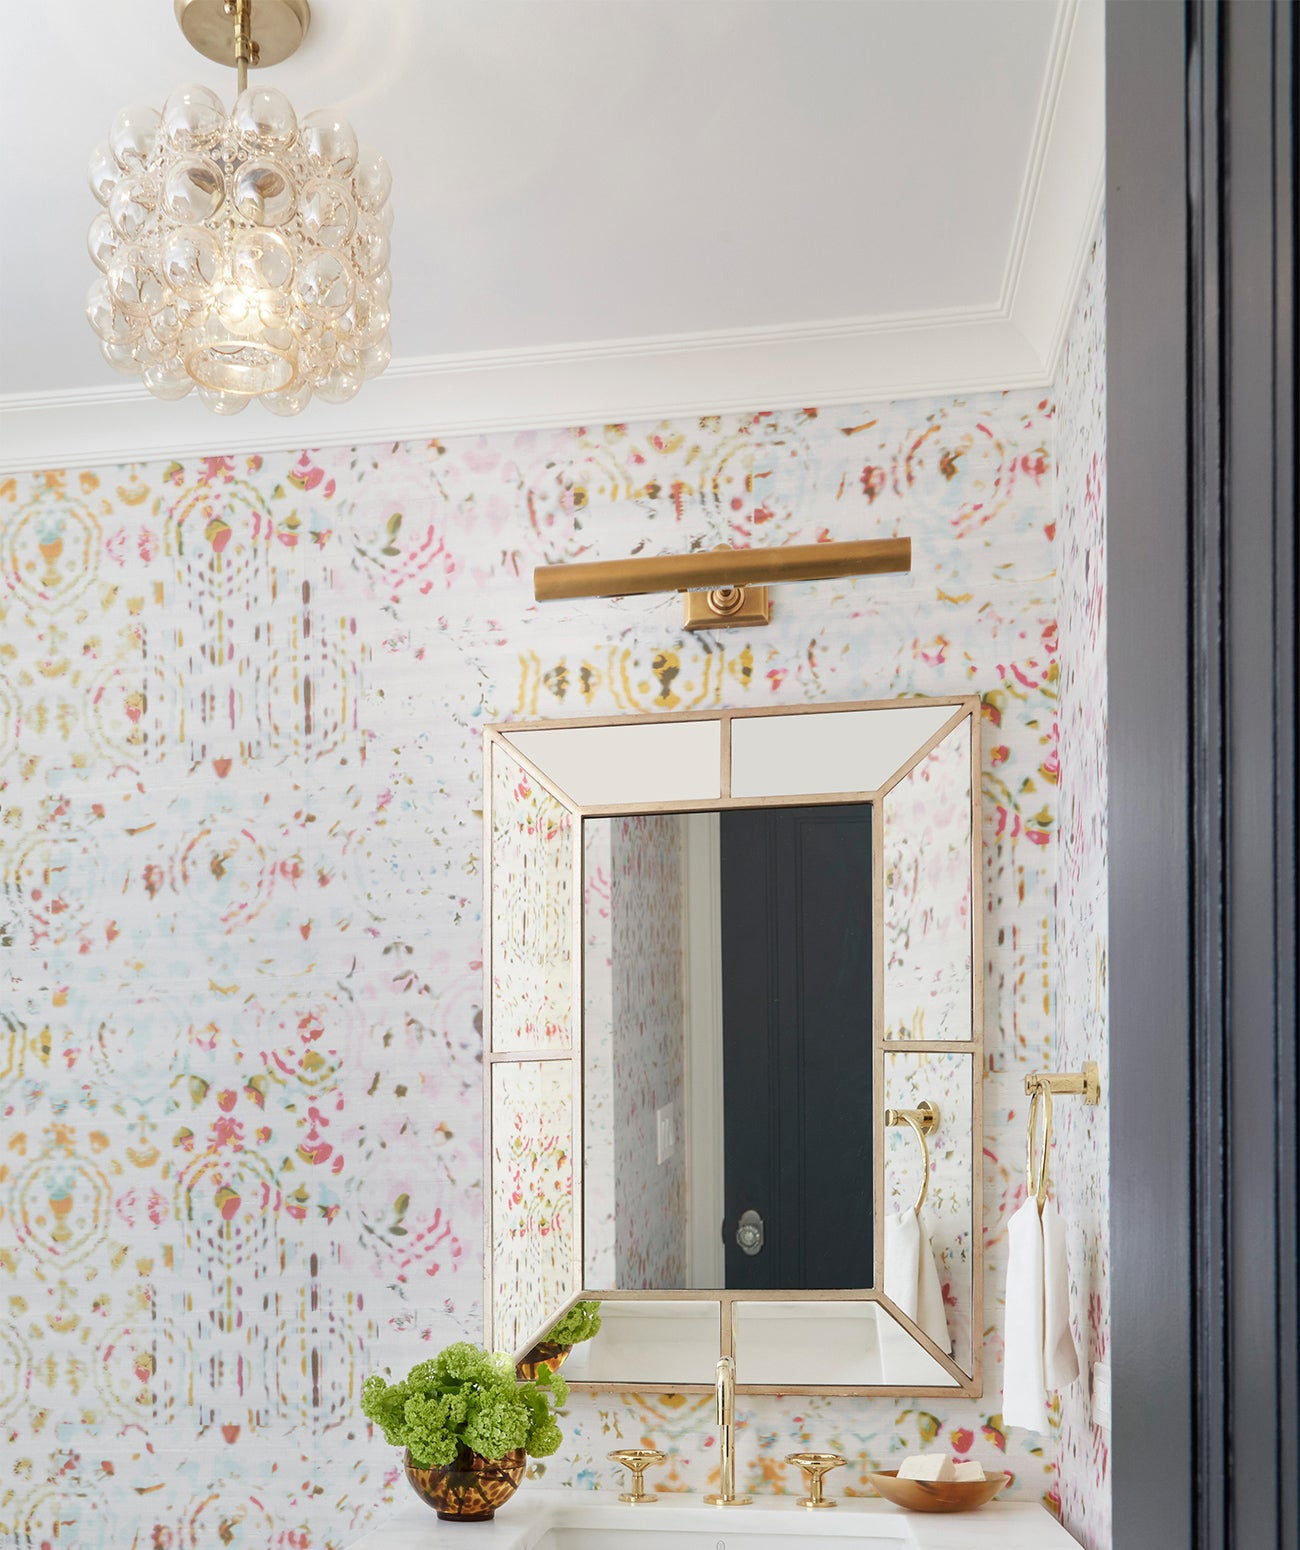 A bright powder room featuring chandelier and patterned wallpaper/Photography: Amy Kartheiser Design/Another powder room means another means chance to play with pattern.